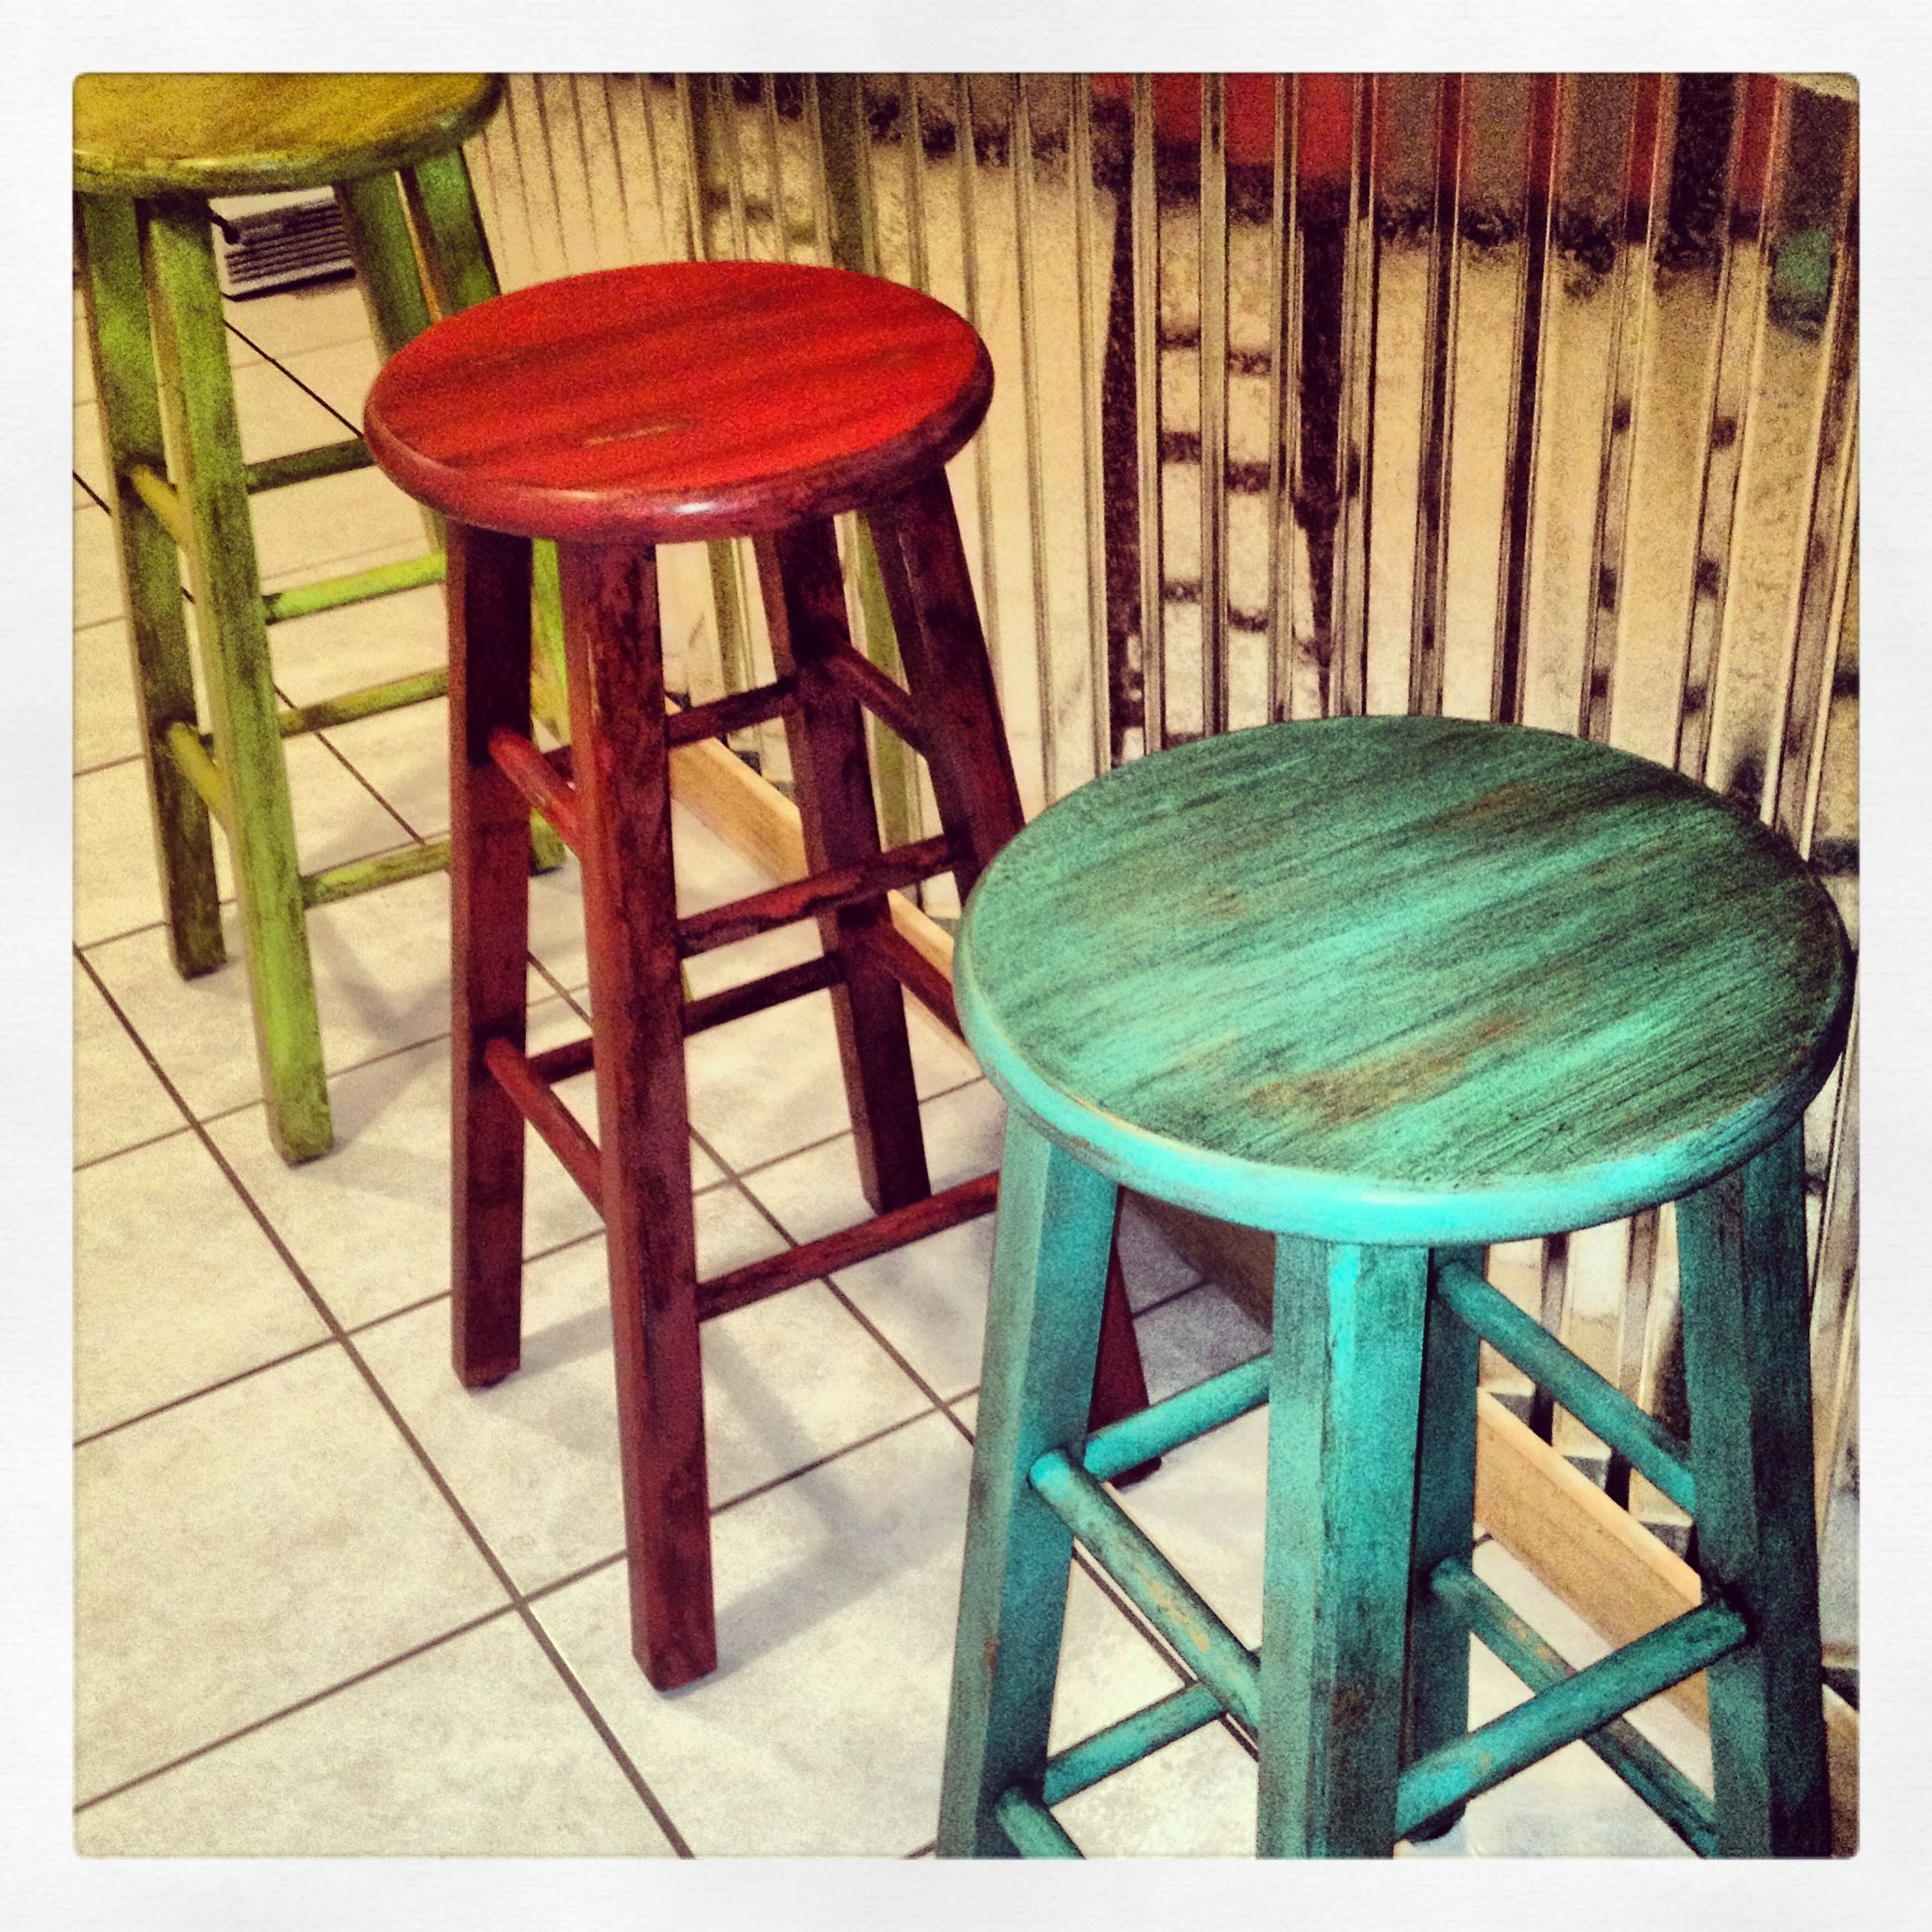 Painted Stools With Glaze Brushed On Beautifulsalvage I So